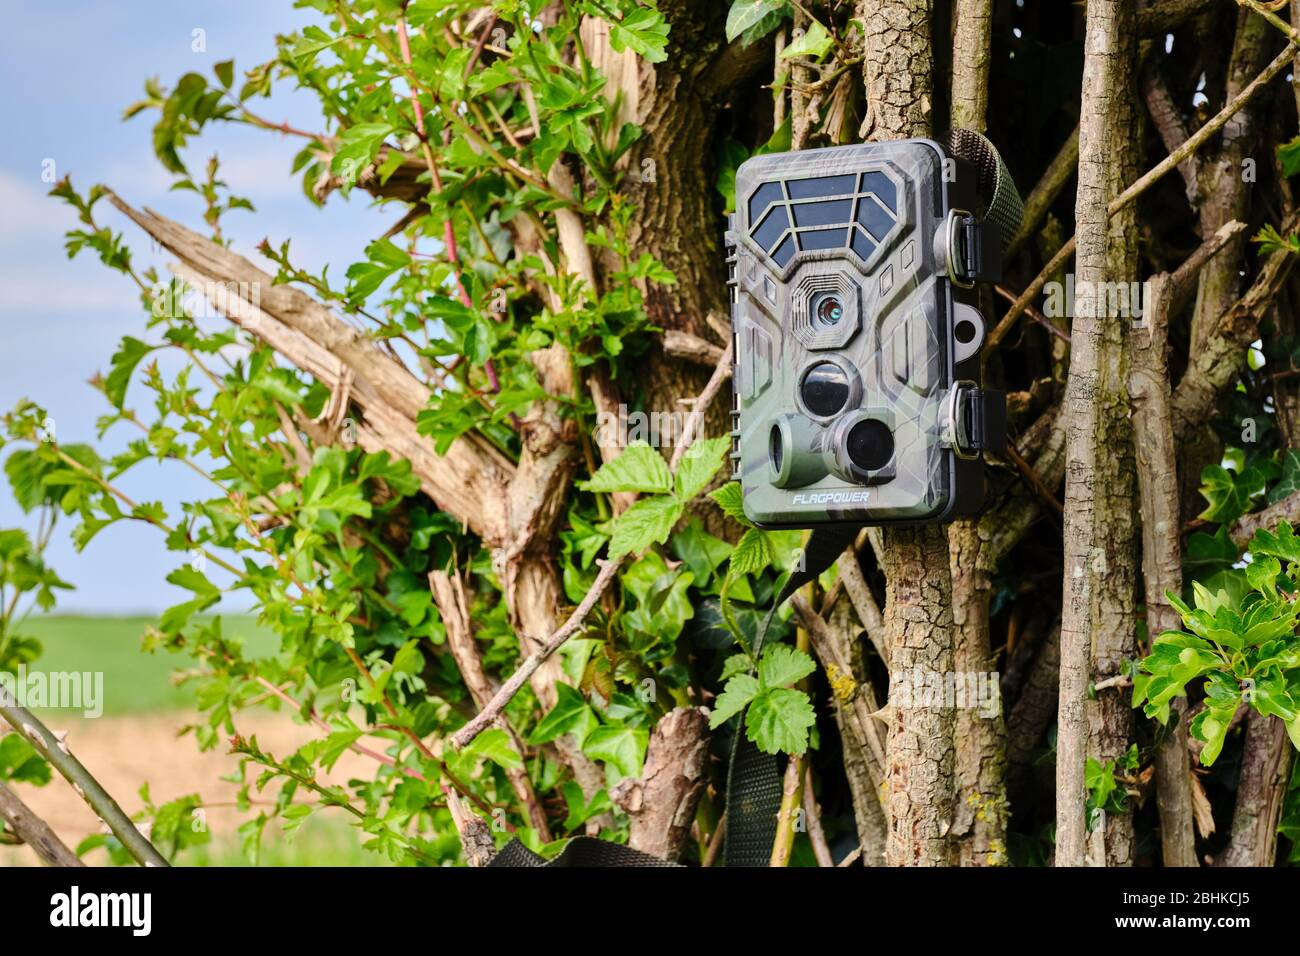 camera-trap-or-trail-cam-set-up-on-a-hed